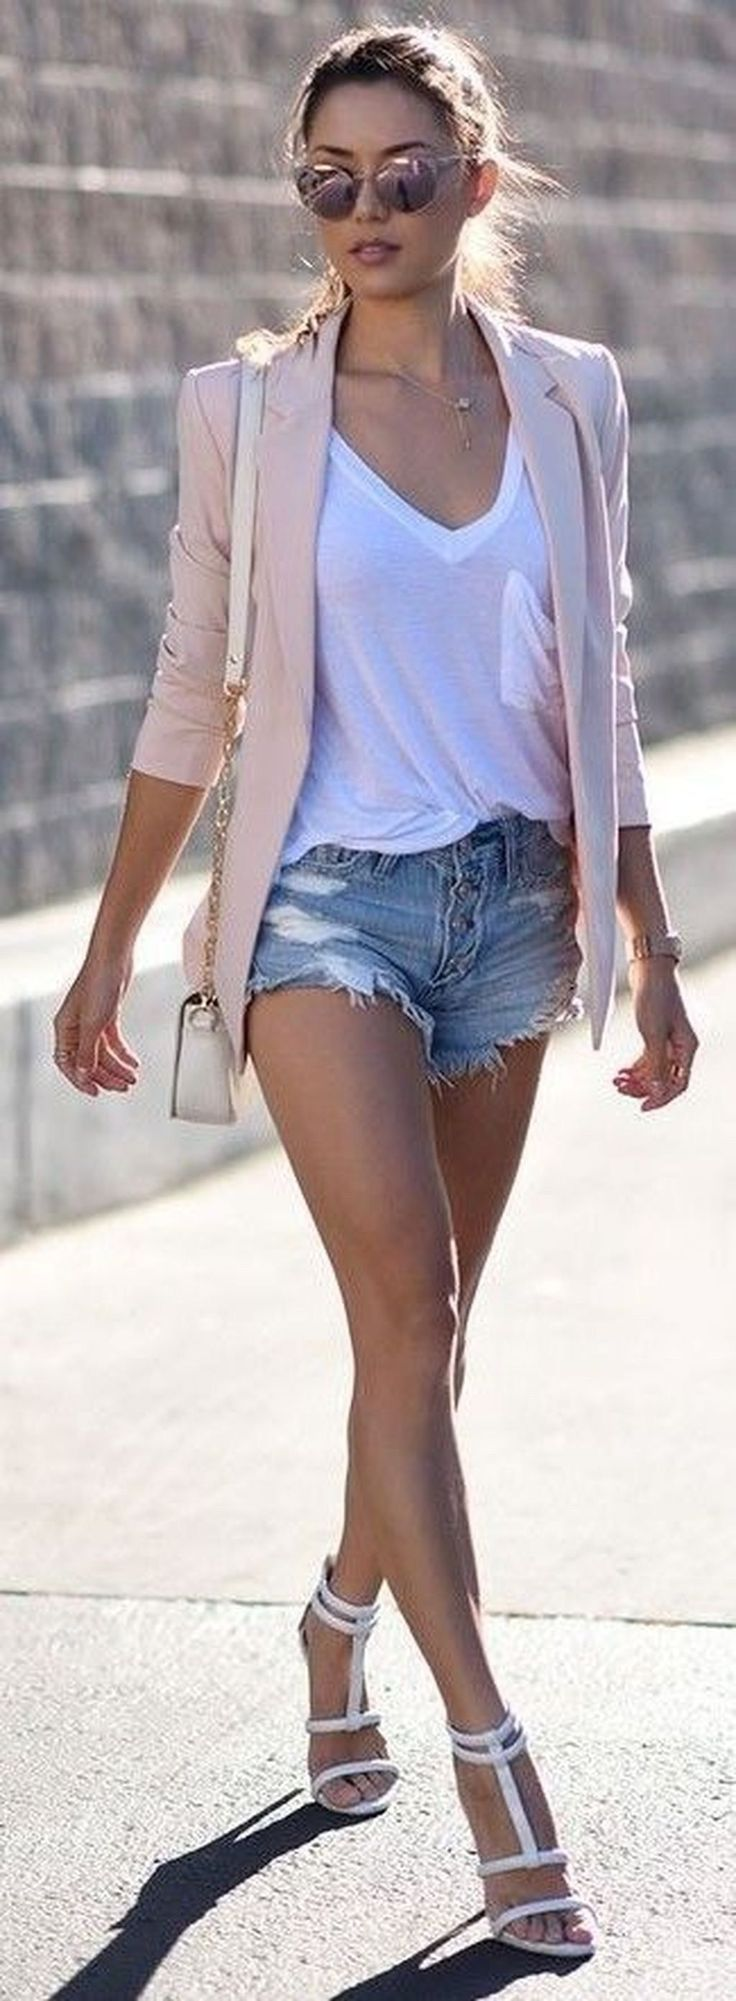 Top Frühling und Sommer Outfits Frauen Ideen – Outfits